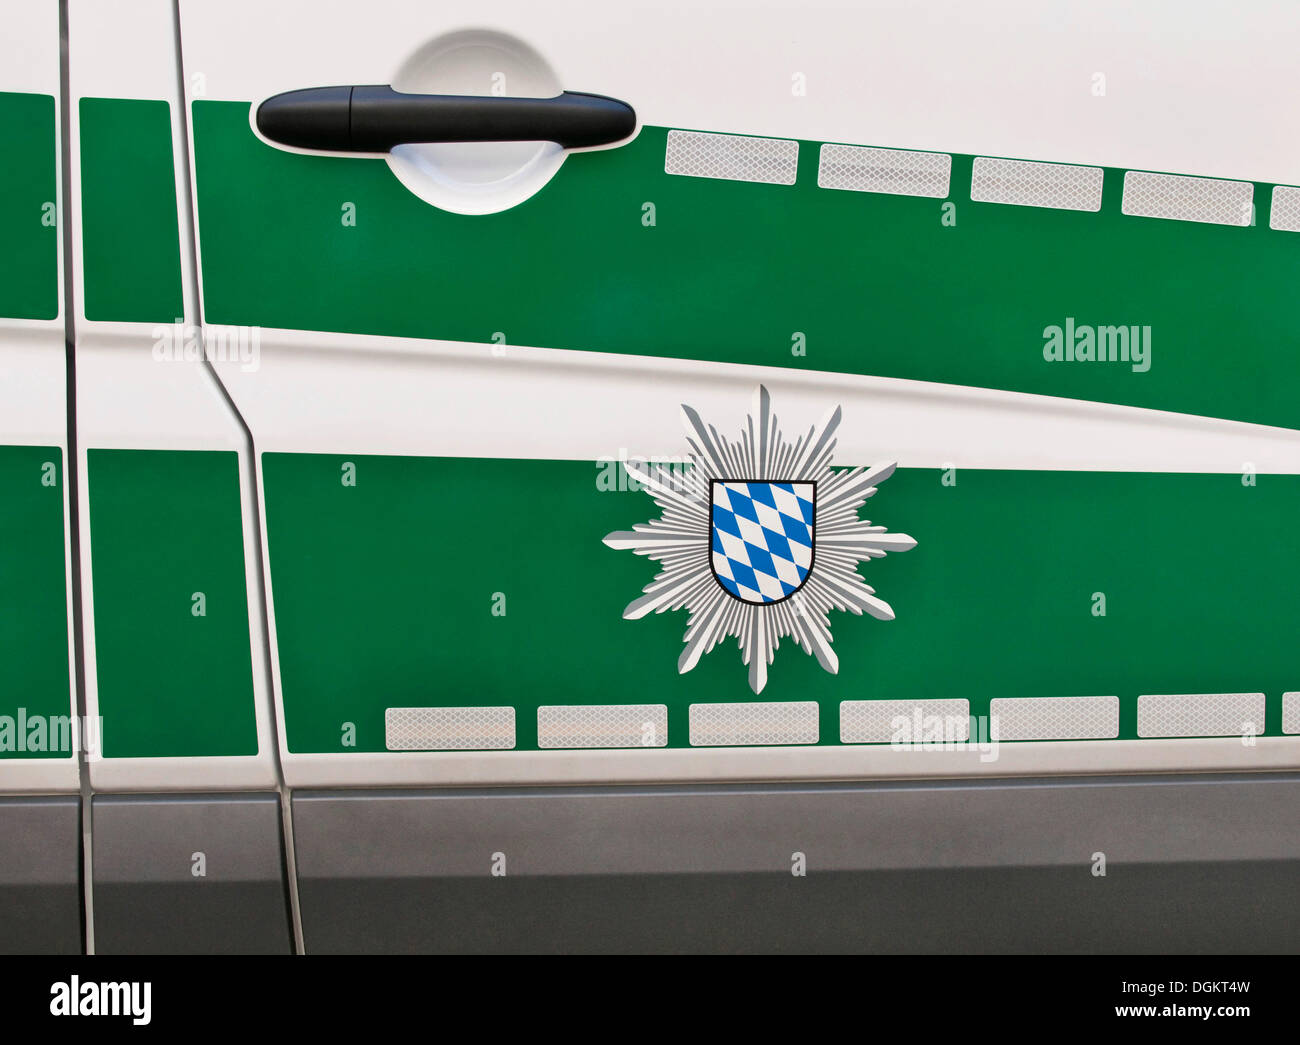 Bavarian police badge on a green police car - Stock Image